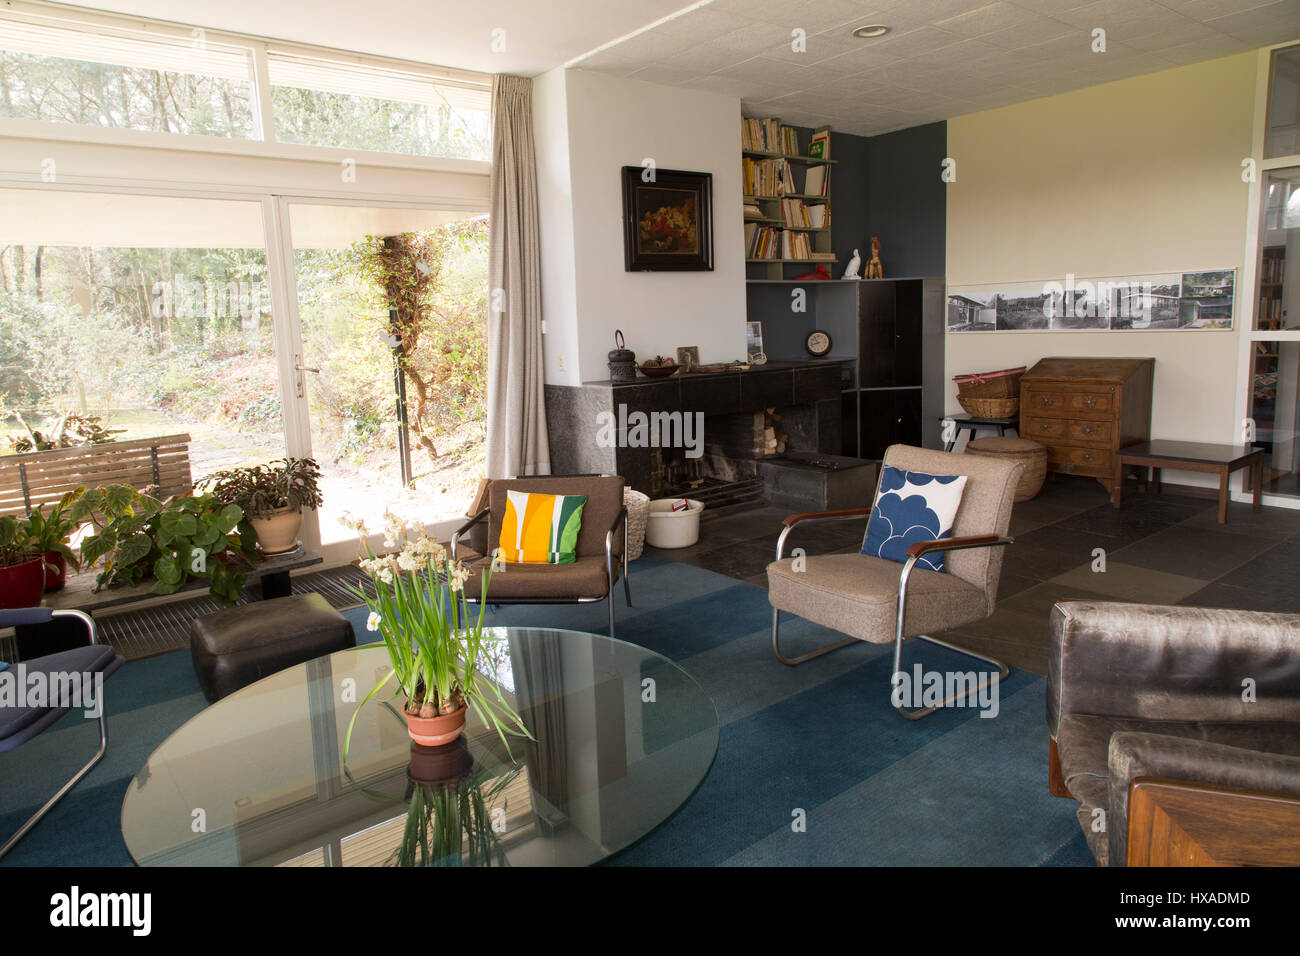 Living Room Of The Van Daalen House Designed By Gerrit Rietveld At Bergeijk In Netherlands Dates From 1958 And Is One Several